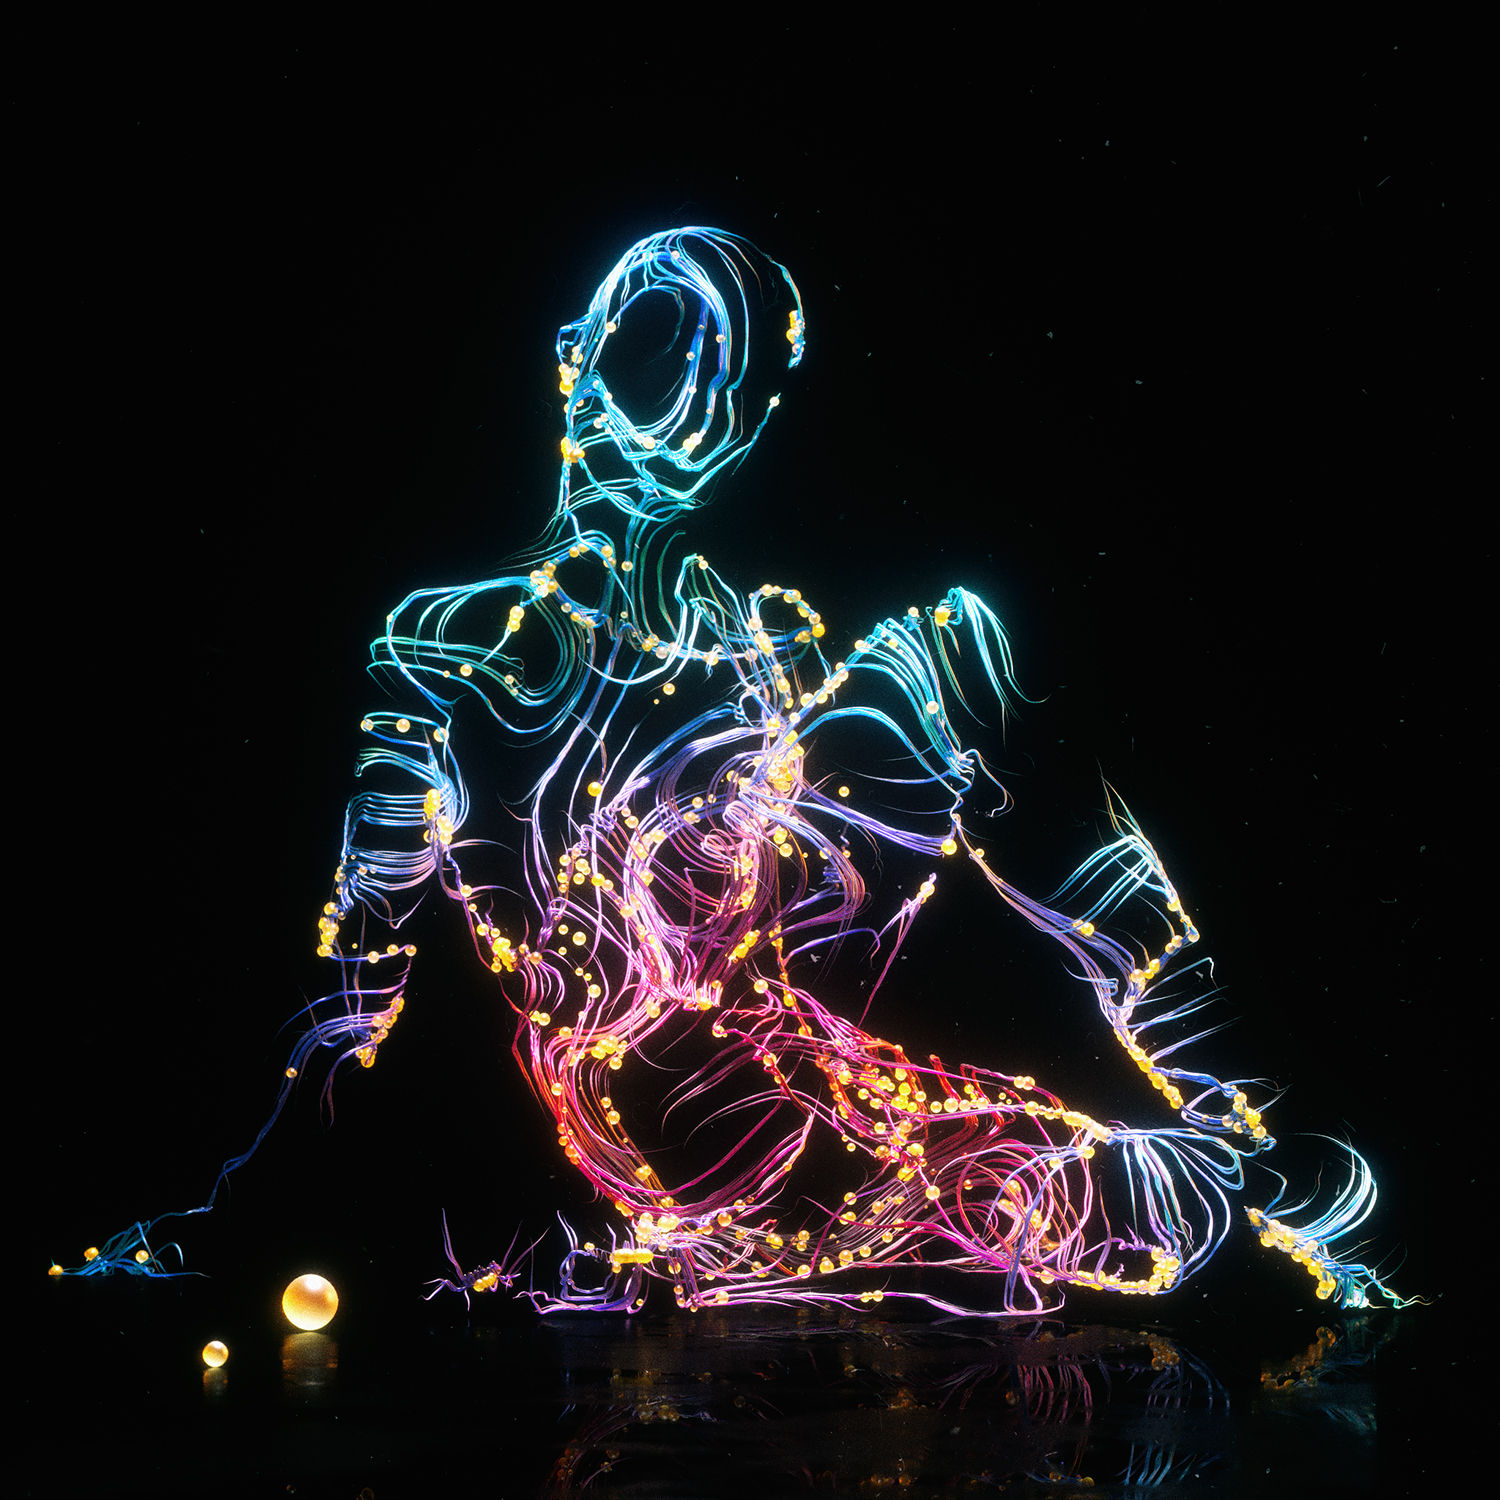 stylized figure, black background, colored lights